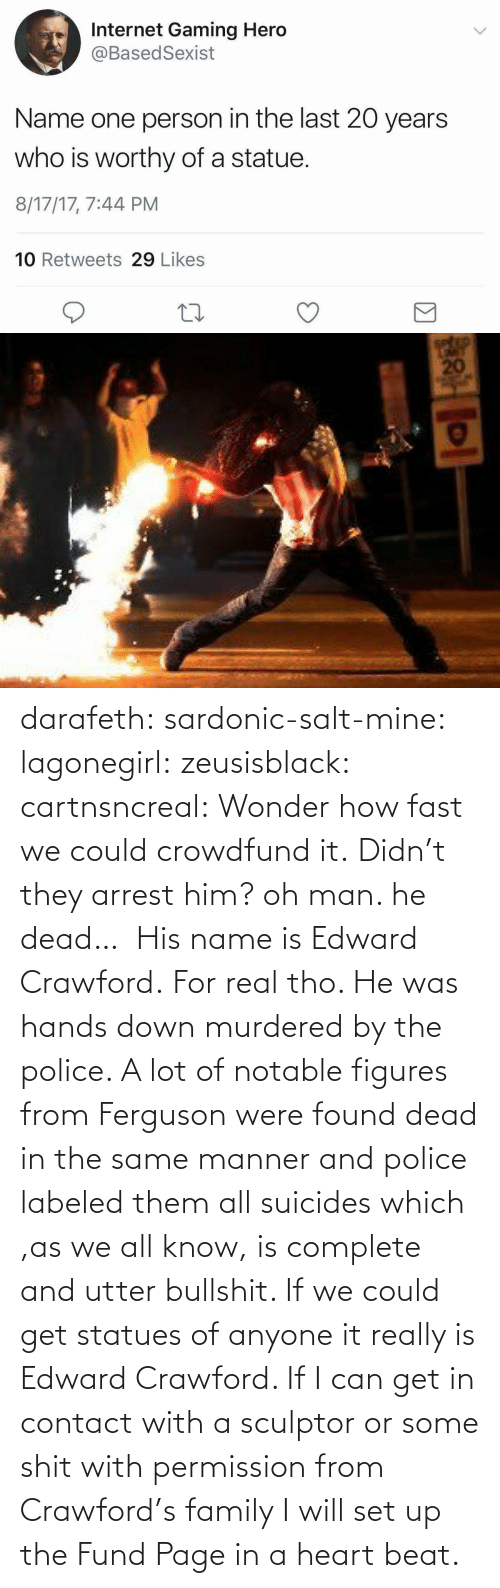 name: darafeth: sardonic-salt-mine:  lagonegirl:  zeusisblack:  cartnsncreal:   Wonder how fast we could crowdfund it.    Didn't they arrest him?  oh man. he dead…   His name is Edward Crawford.   For real tho. He was hands down murdered by the police. A lot of notable figures from Ferguson were found dead in the same manner and police labeled them all suicides which ,as we all know, is complete and utter bullshit.  If we could get statues of anyone it really is Edward Crawford. If I can get in contact with a sculptor or some shit with permission from Crawford's family I will set up the Fund Page in a heart beat.